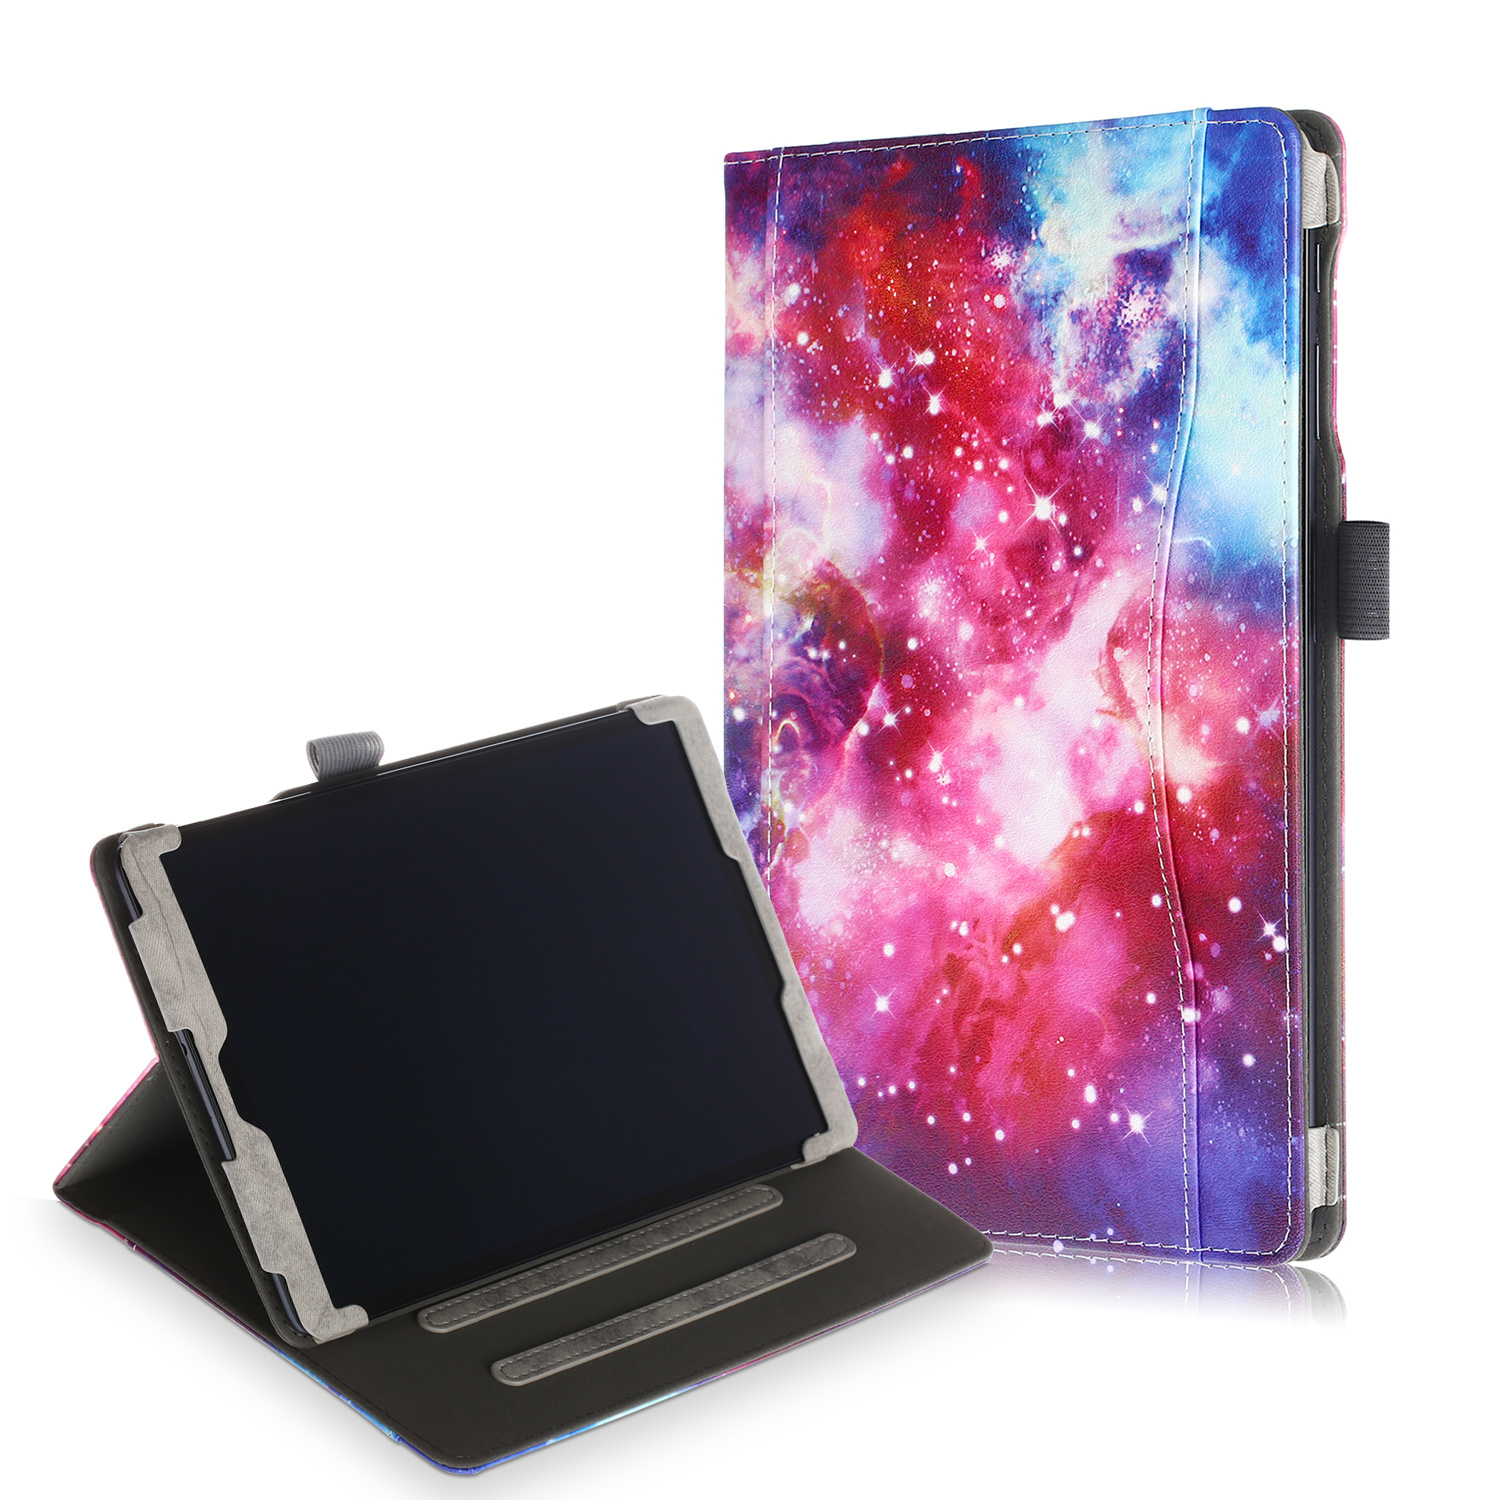 Lunso Luxe stand flip cover hoes Galaxy voor de Samsung Galaxy Tab A 10.1 inch (2019)